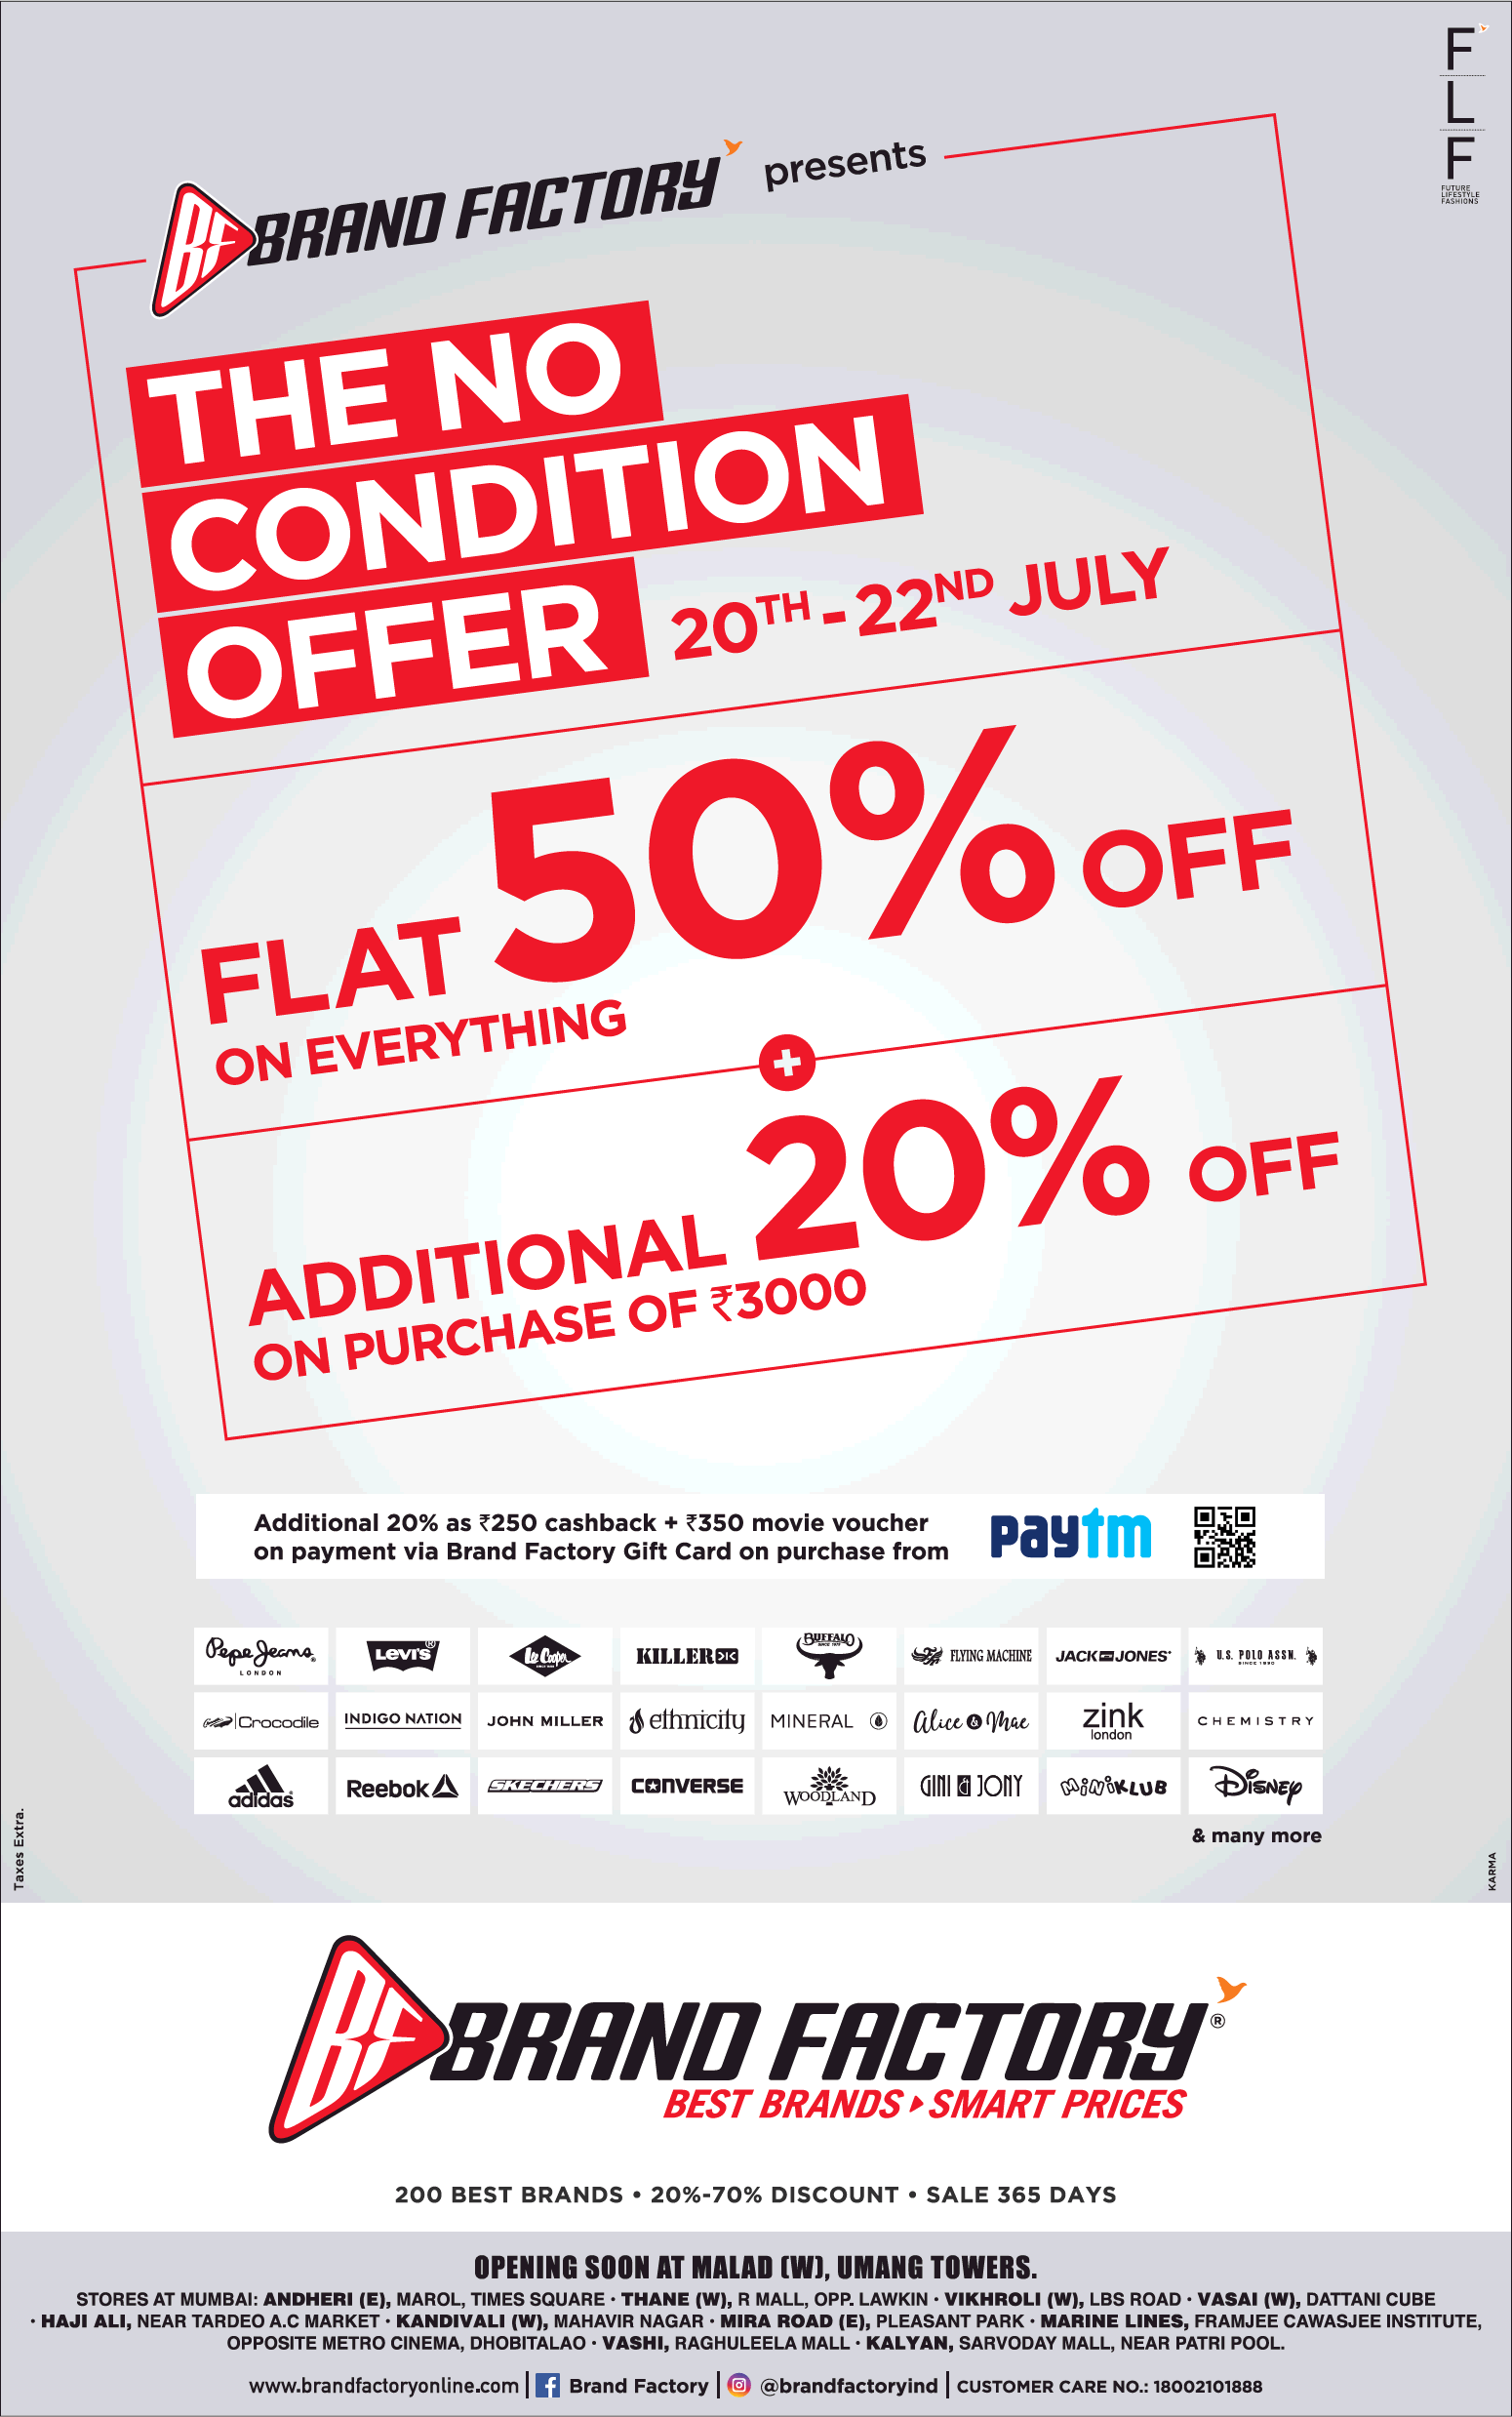 Brand Factory The No Condition Offer Flat 50 Off Ad